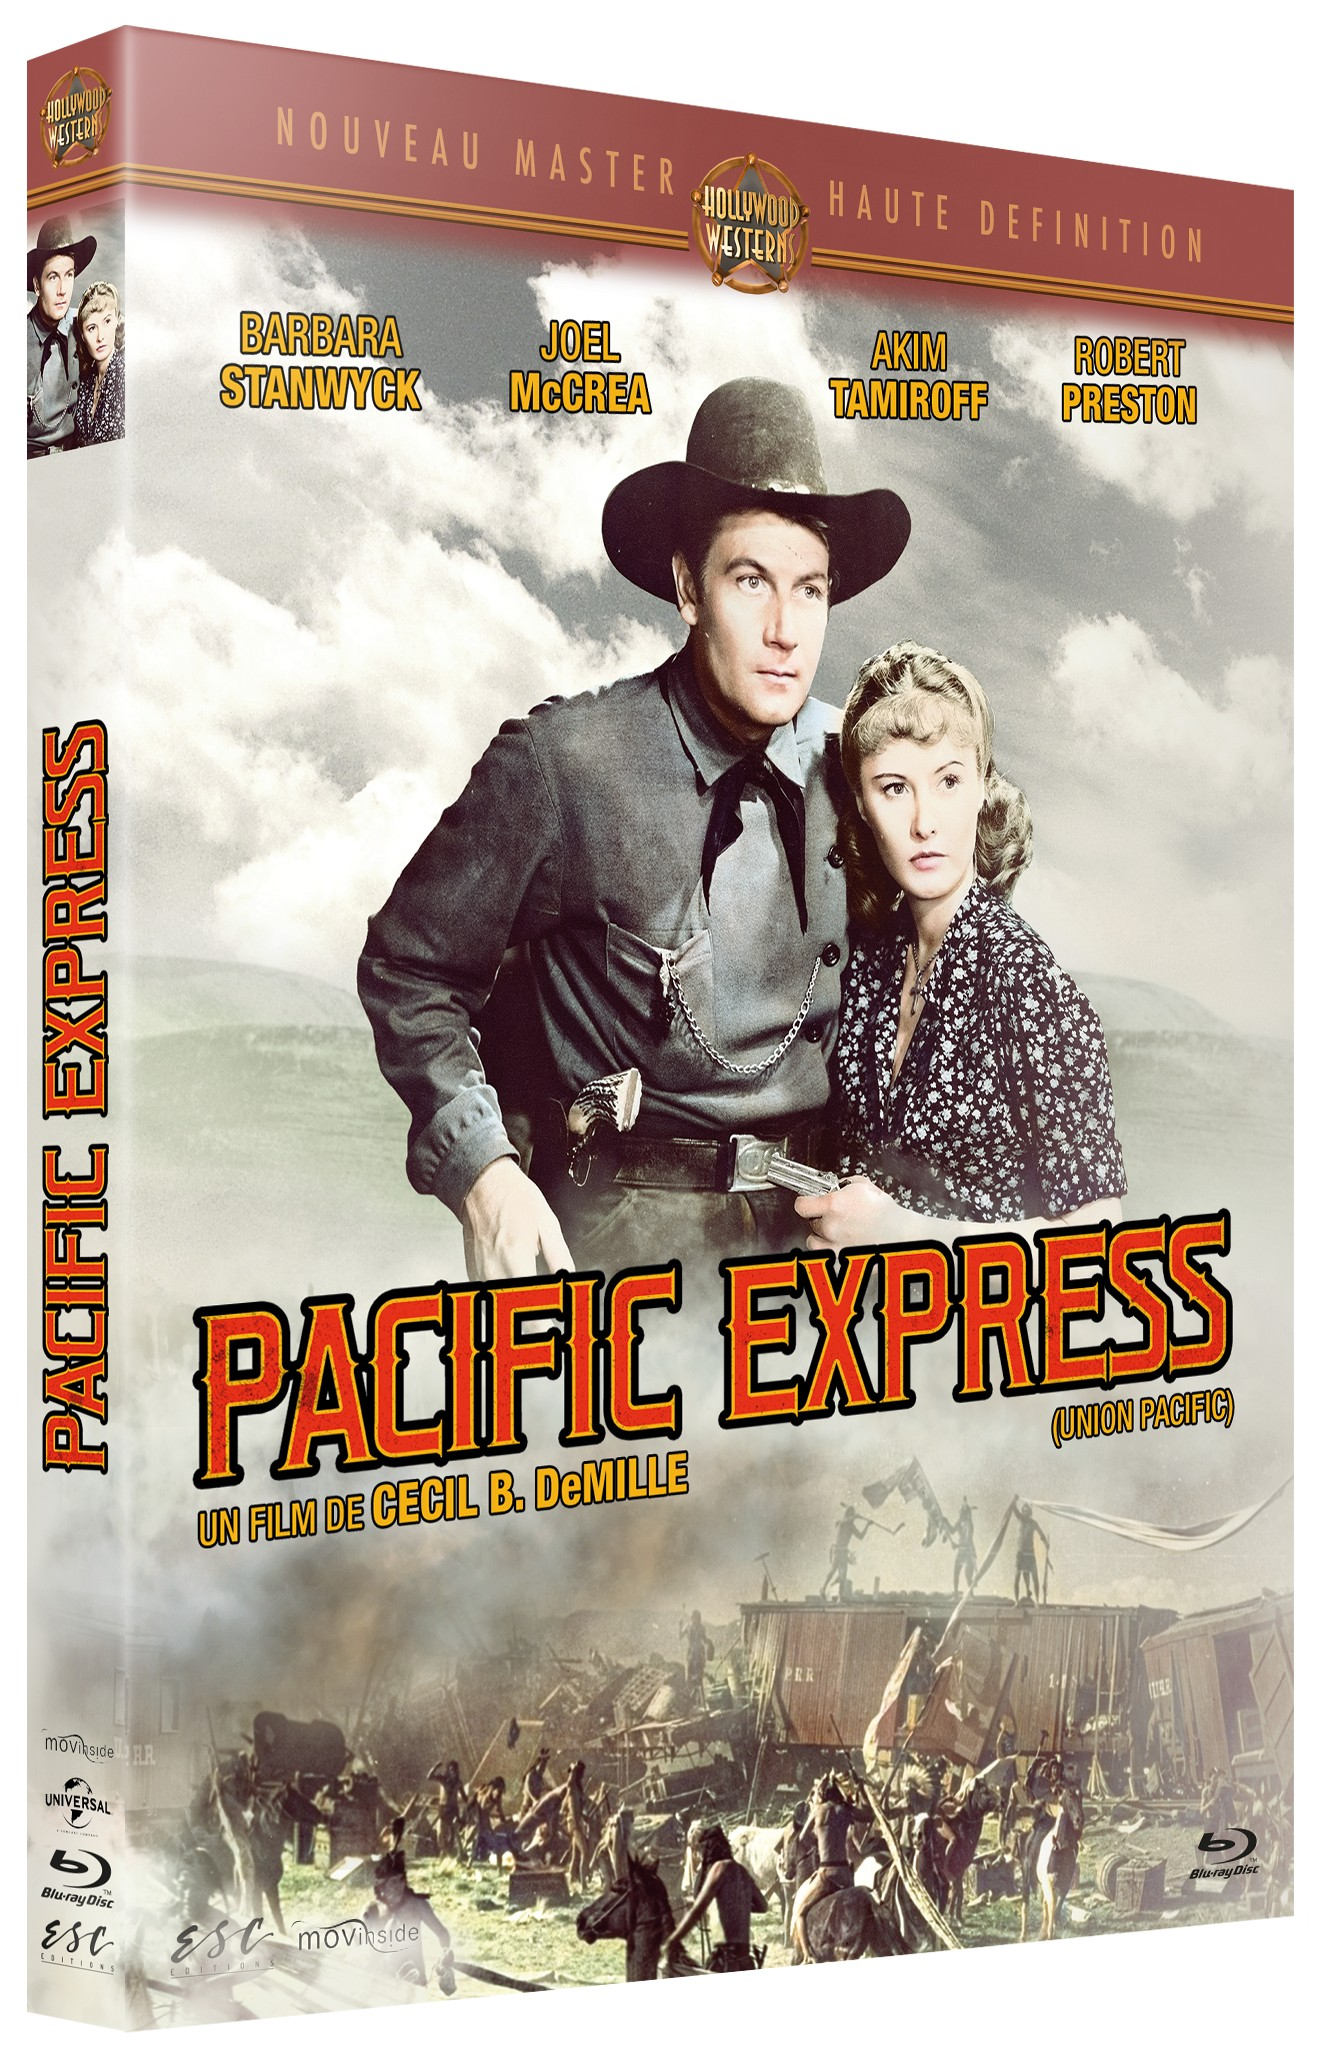 PACIFIC EXPRESS -BRD